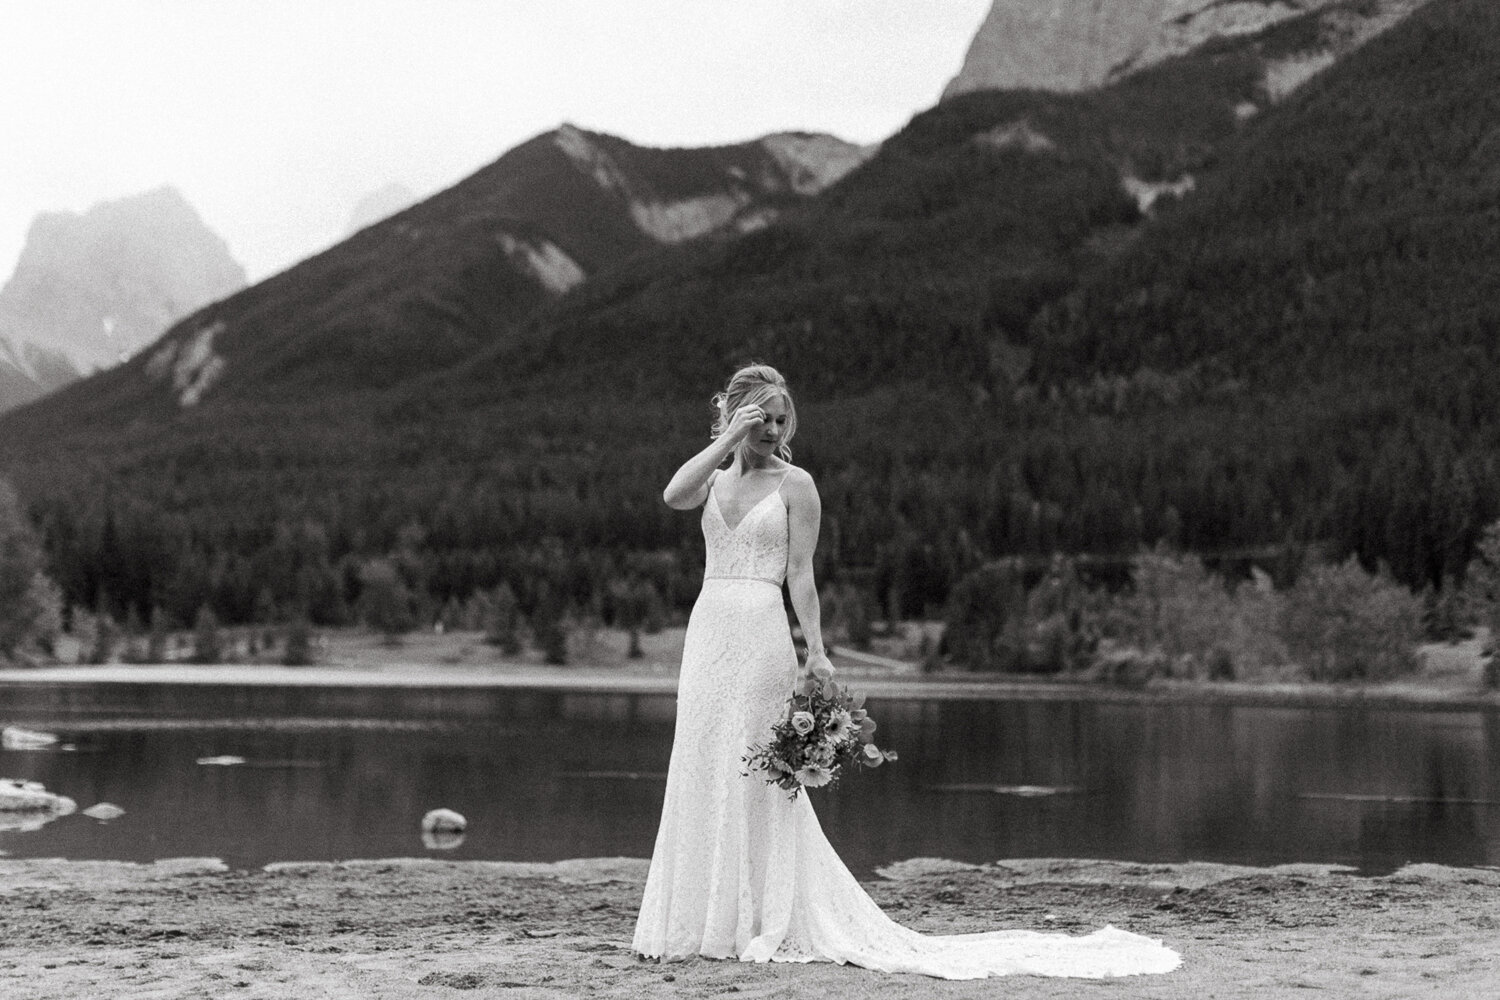 94-Canmore-Alberta-Real-Wedding-Best-Wedding-Photographers-142.JPG